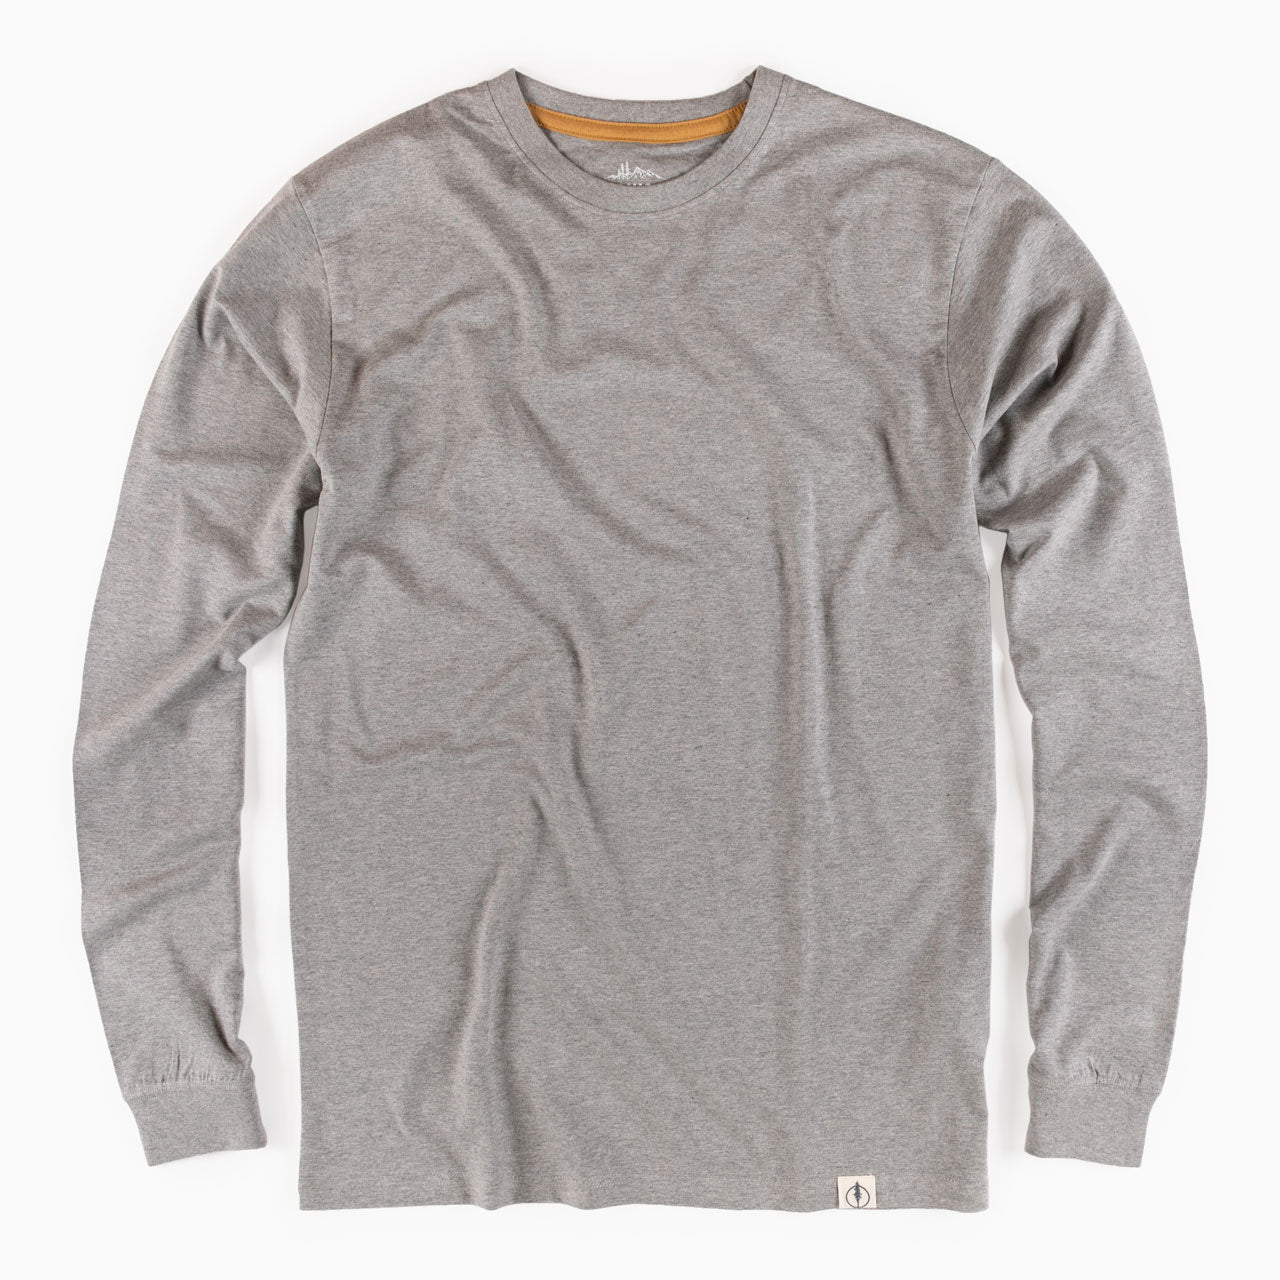 Long Sleeve Tall T-Shirt (Also Available in Extra Tall)